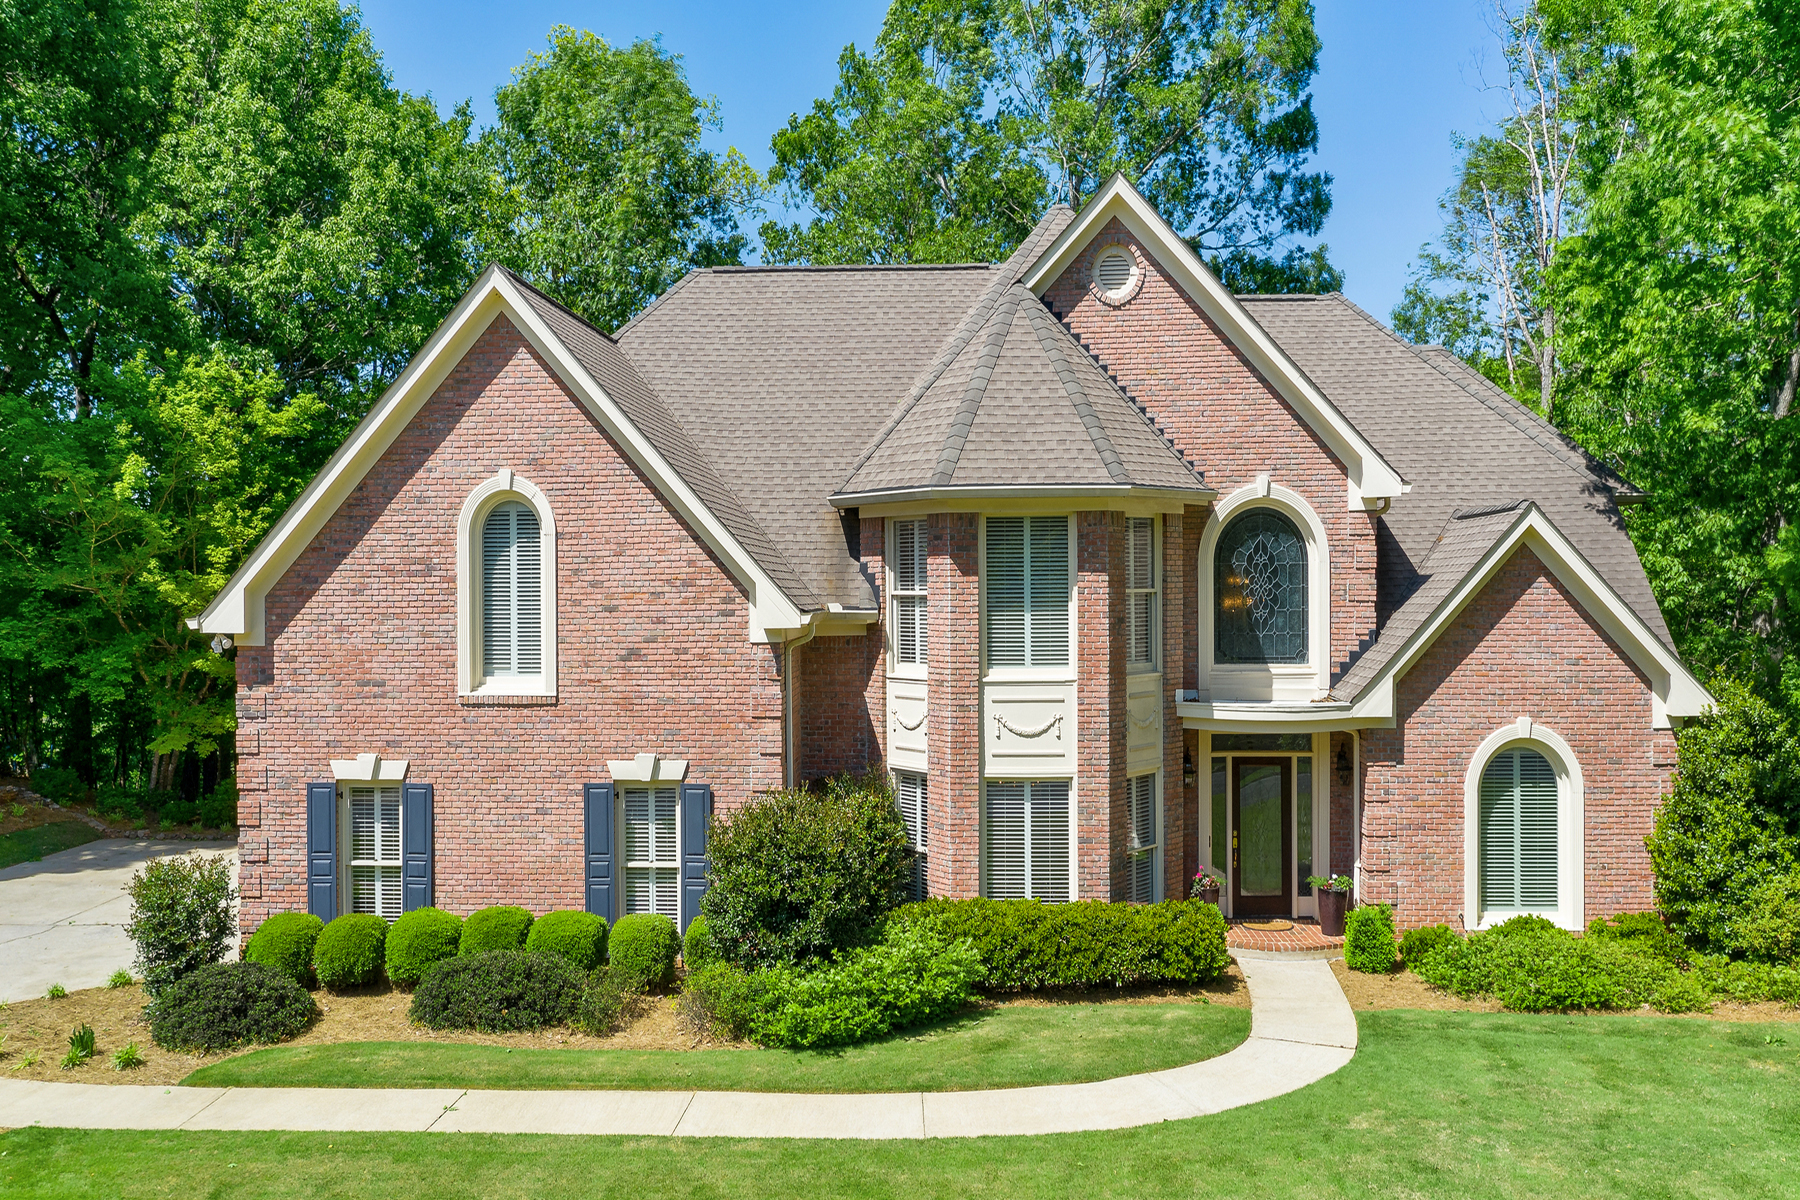 Single Family Homes for Active at Gorgeous Executive Estate On River Lot In Gwinnett 4035 Runnymede Drive SW Lilburn, Georgia 30047 United States